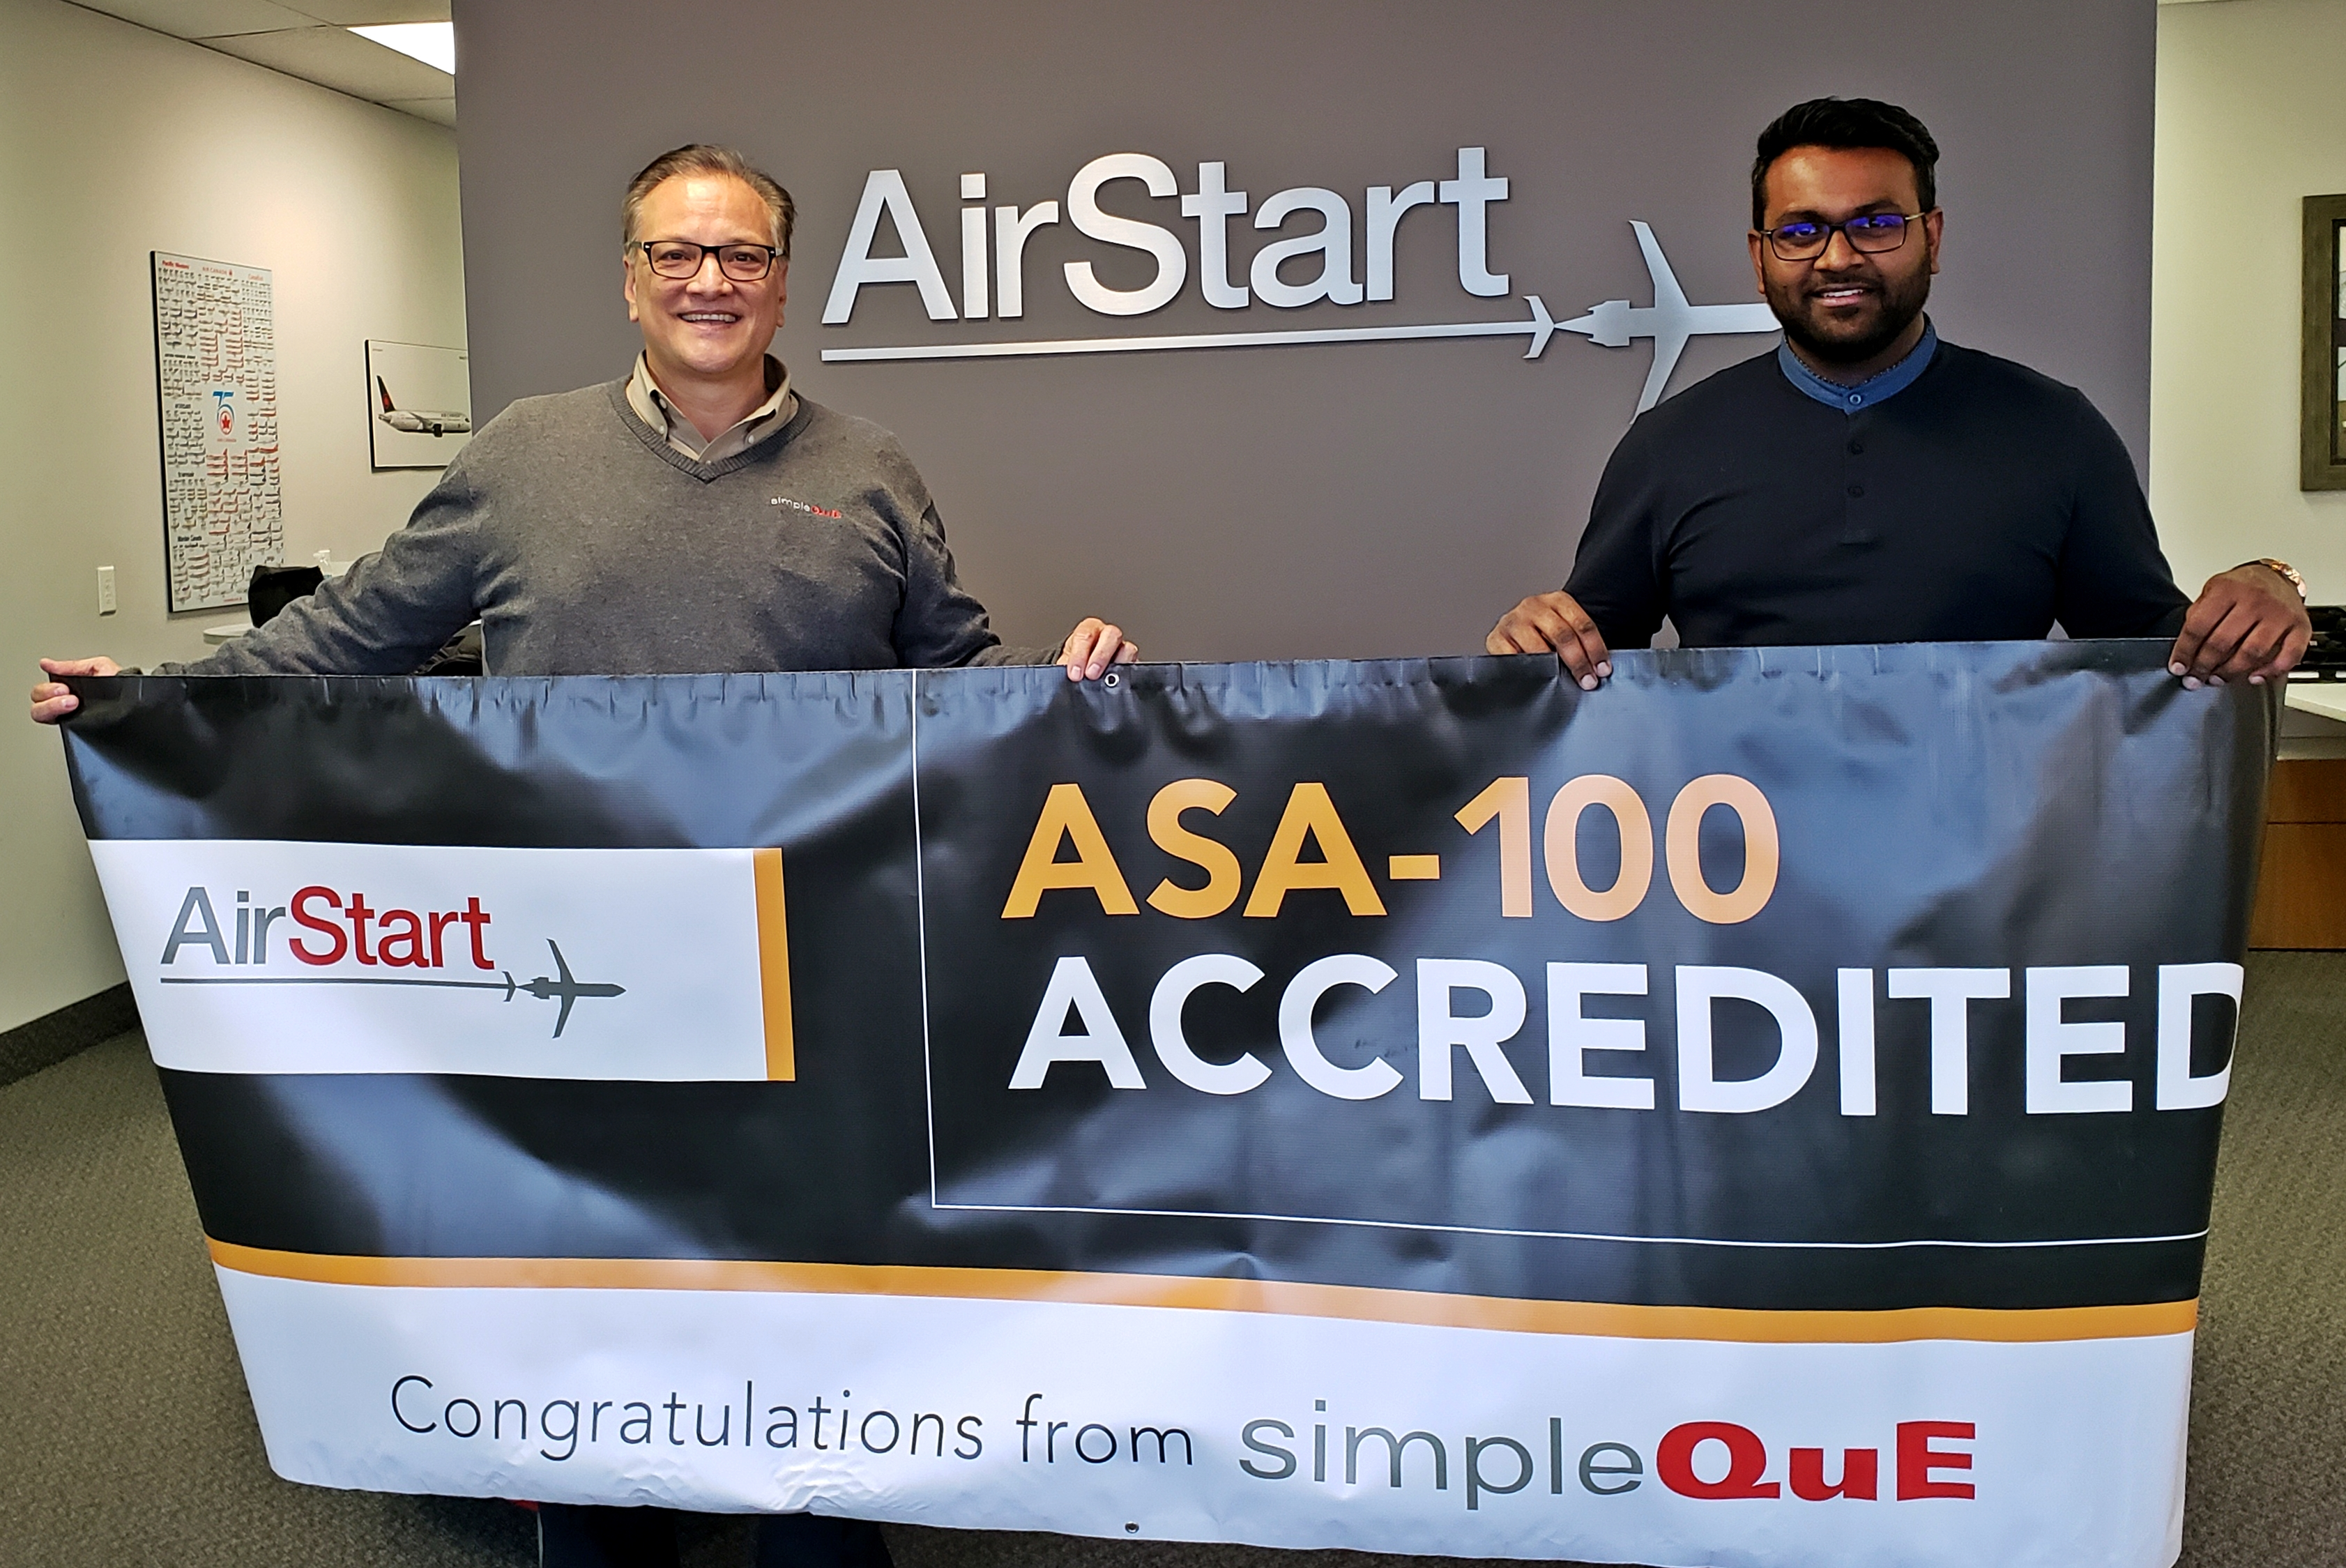 AirStart - Flying High with ASA-100 and AS9120